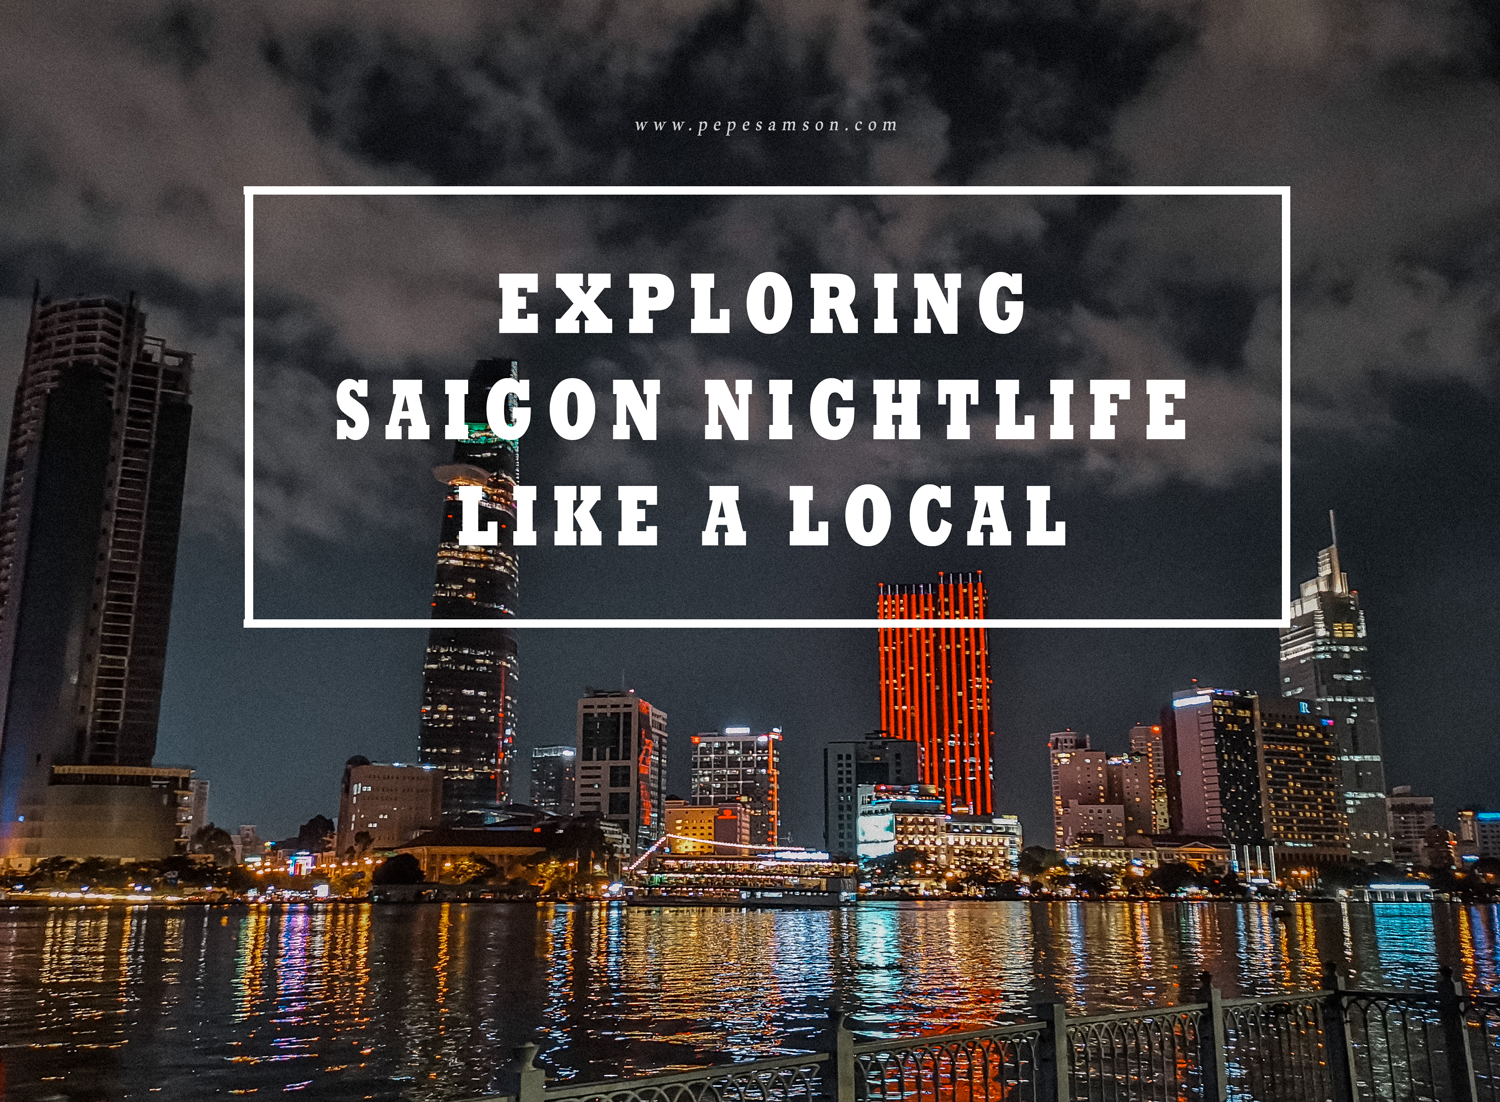 Exploring Saigon Nightlife Like a Local with KKday